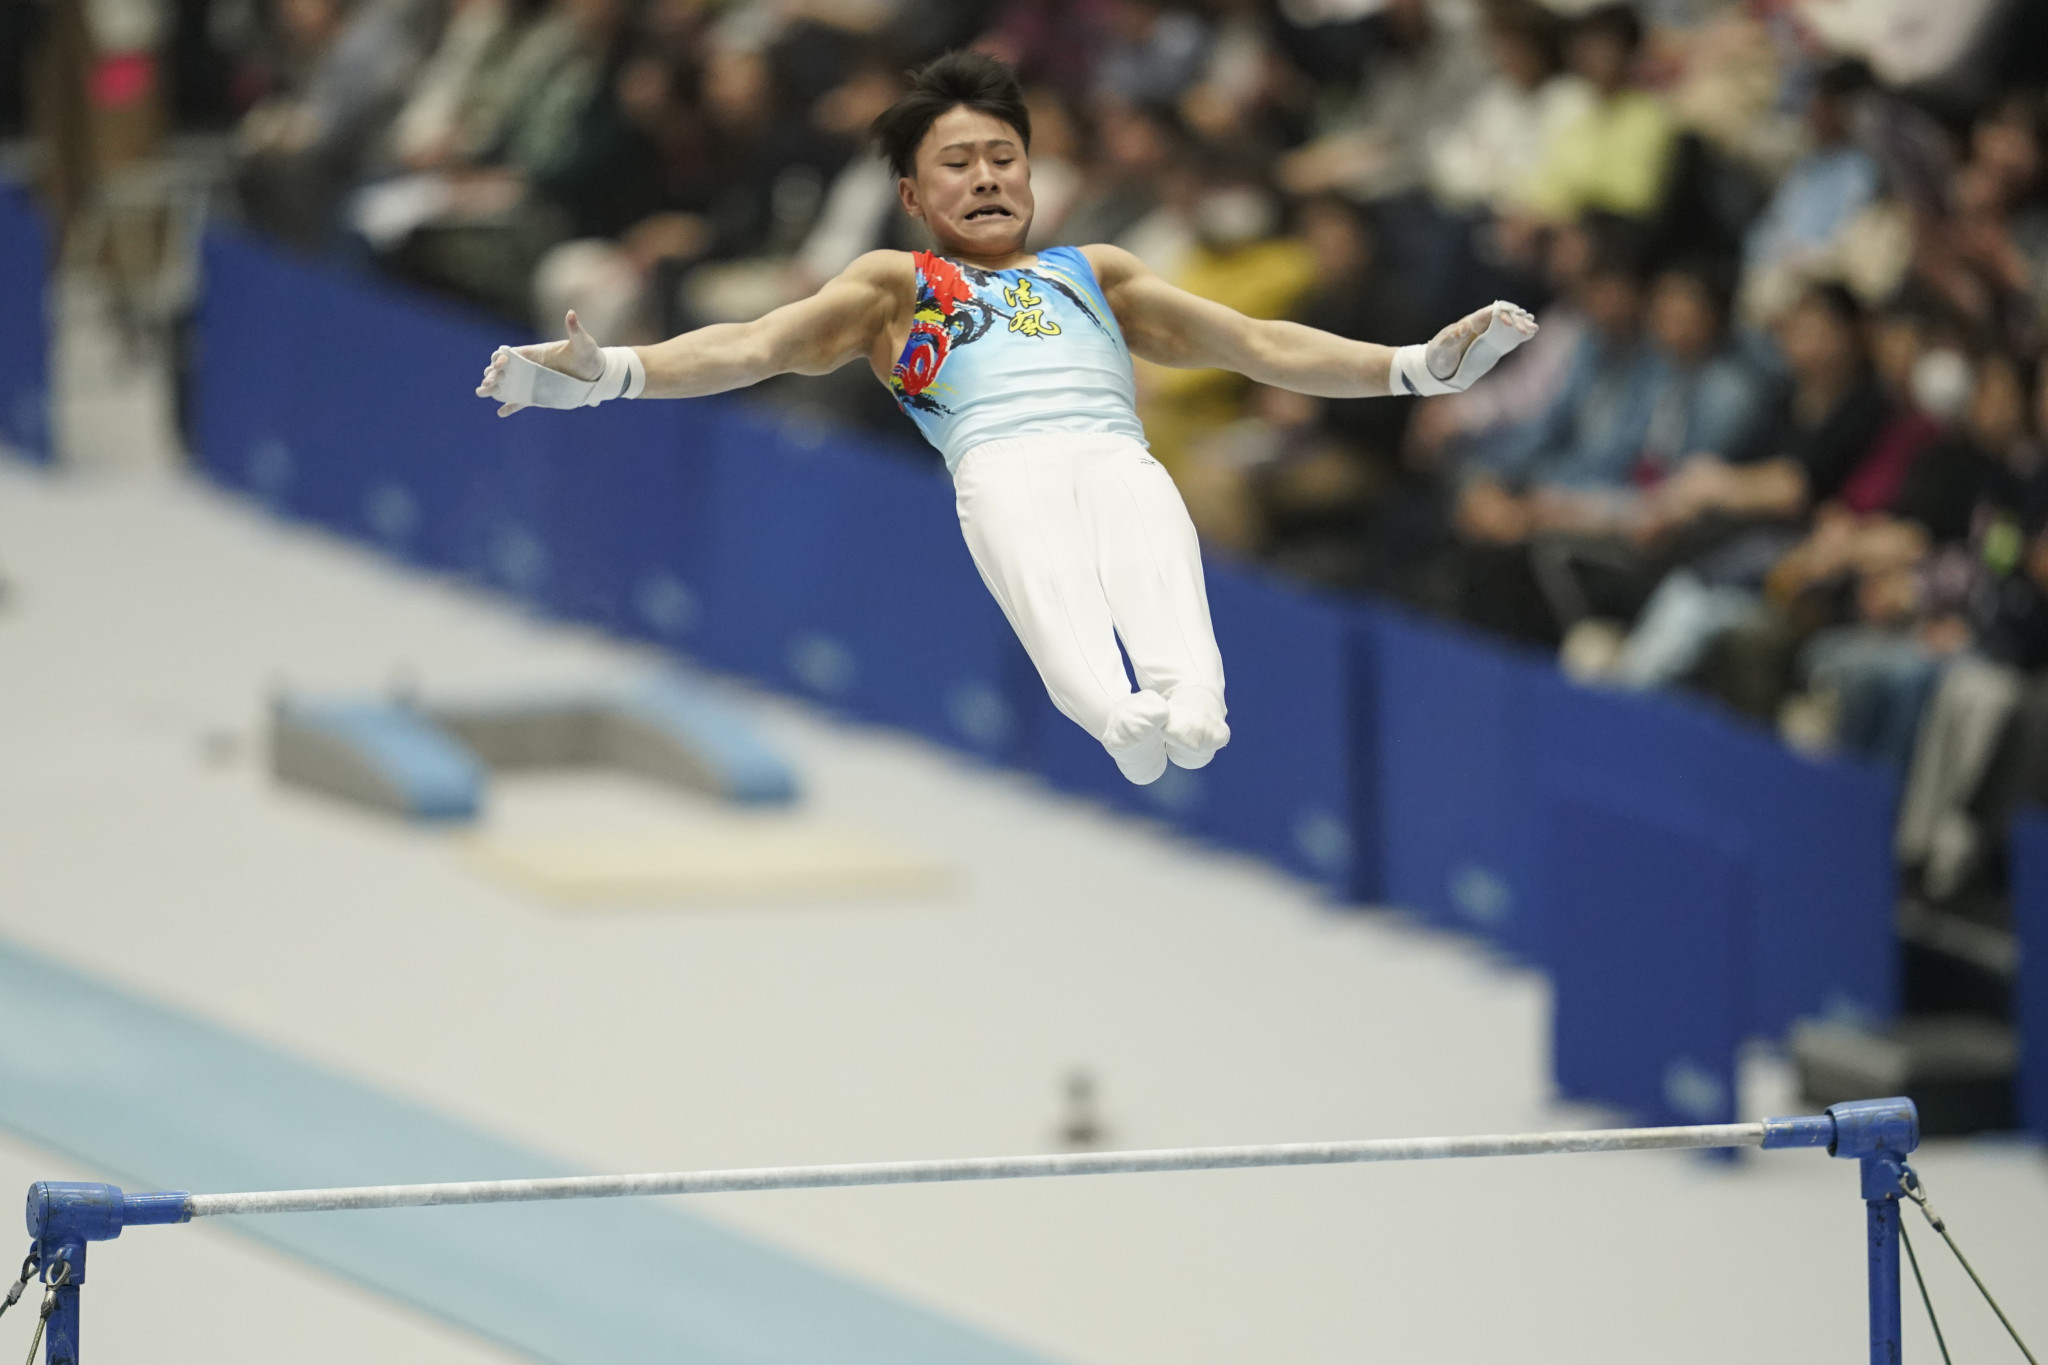 Five-time Youth Olympic gold medallist among field for debut of Artistic Gymnastics Junior World Championships